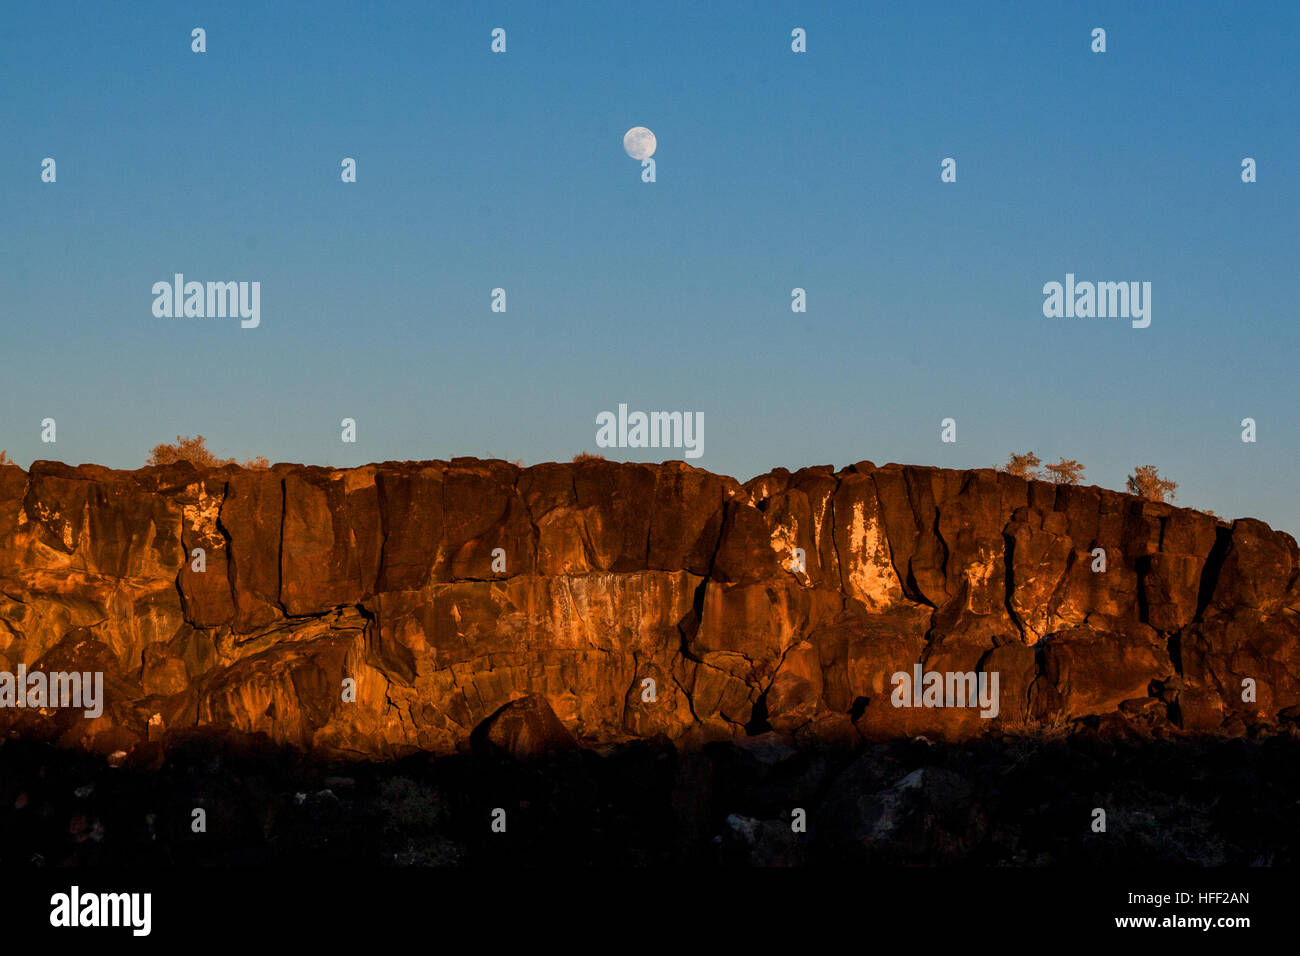 Moonrise over the mesa in Petroglyph National Monument, Albuquerque, New Mexico Stock Photo